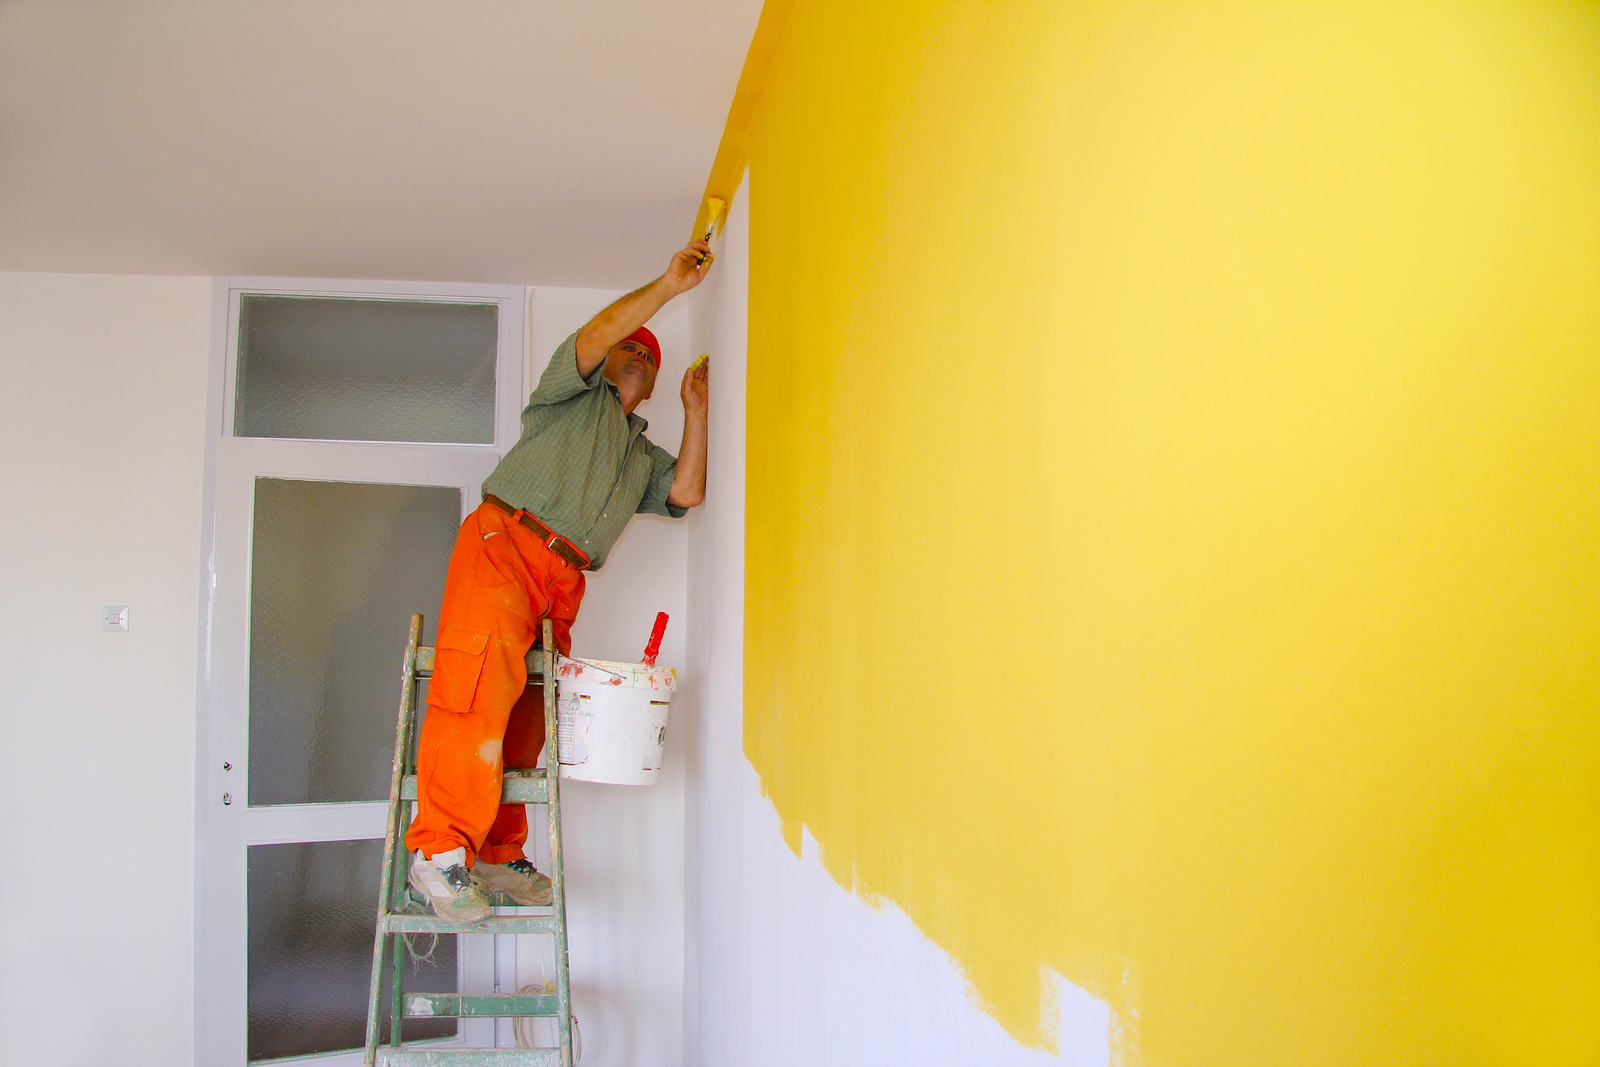 Painting is just one low-cost improvement you can make to your home.